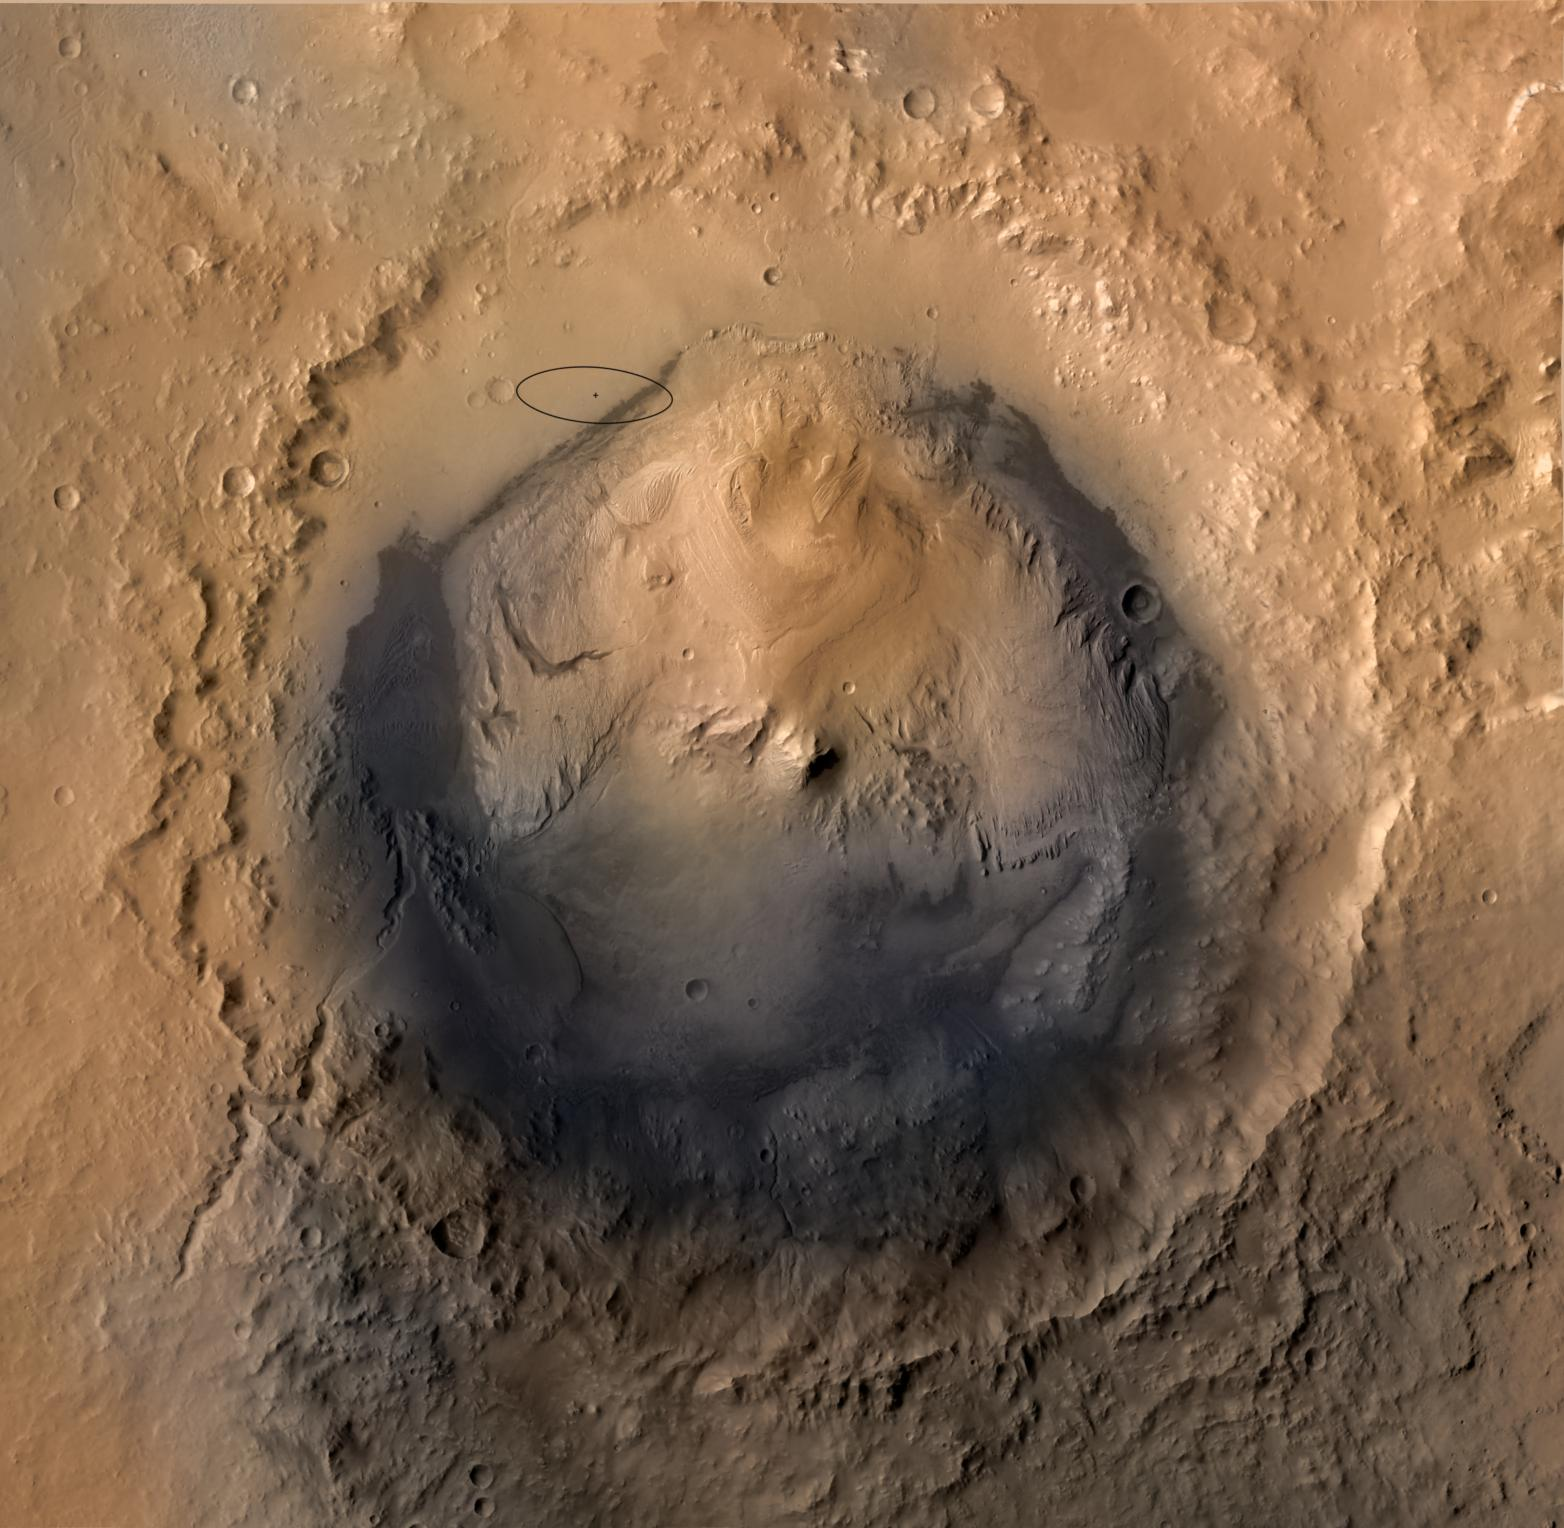 new_gale_crater.jpg